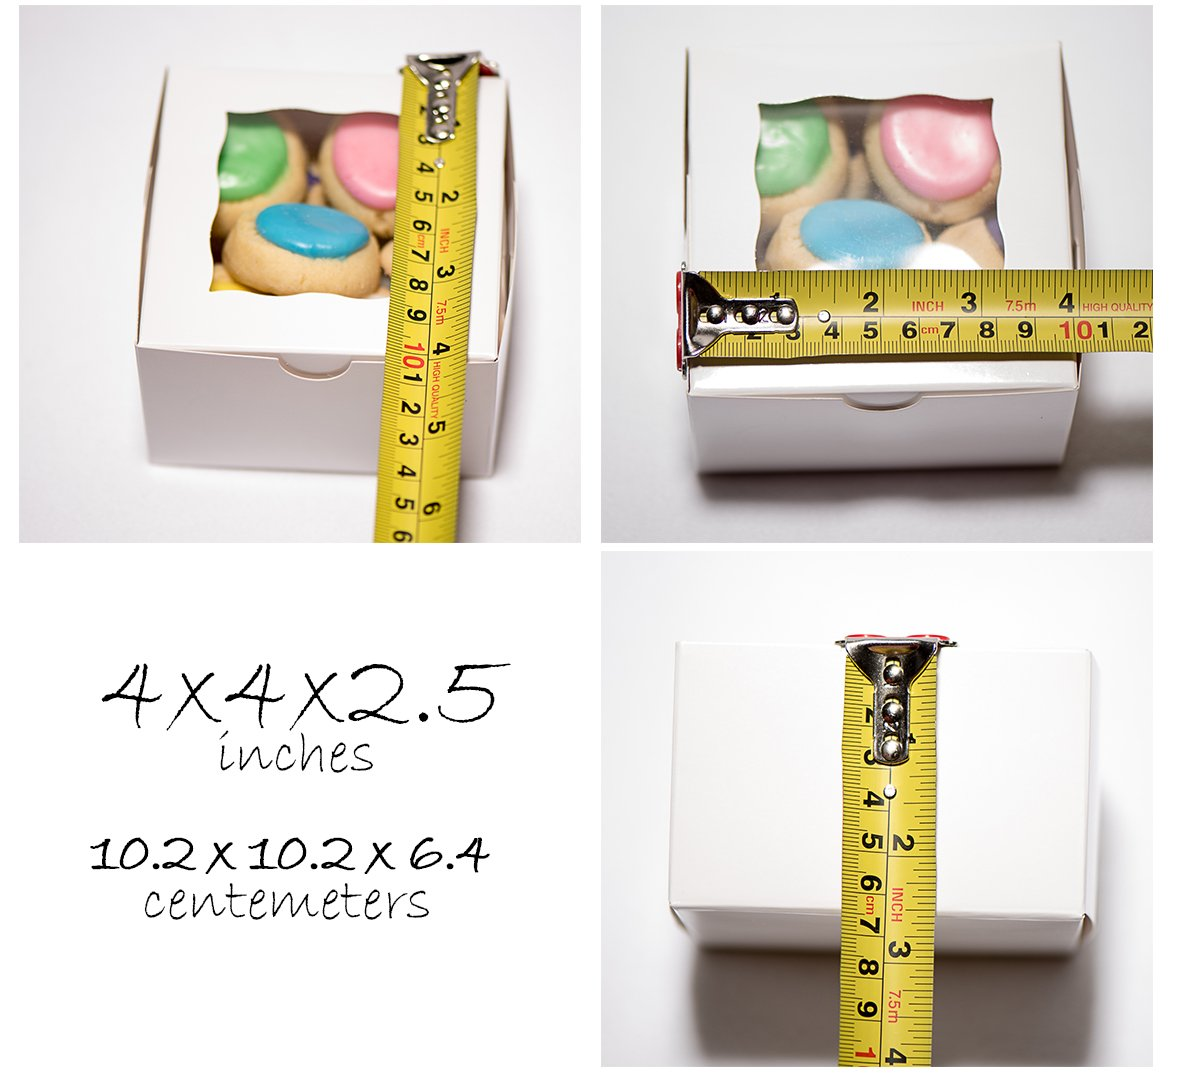 Small White Bakery/Pastry Boxes - 10 Pack 4x4x2.5'' Gift Box for Weddings/Holidays/Party Favors/Birthdays/Desserts, Cookie Boxes with Window, Bonus Labels